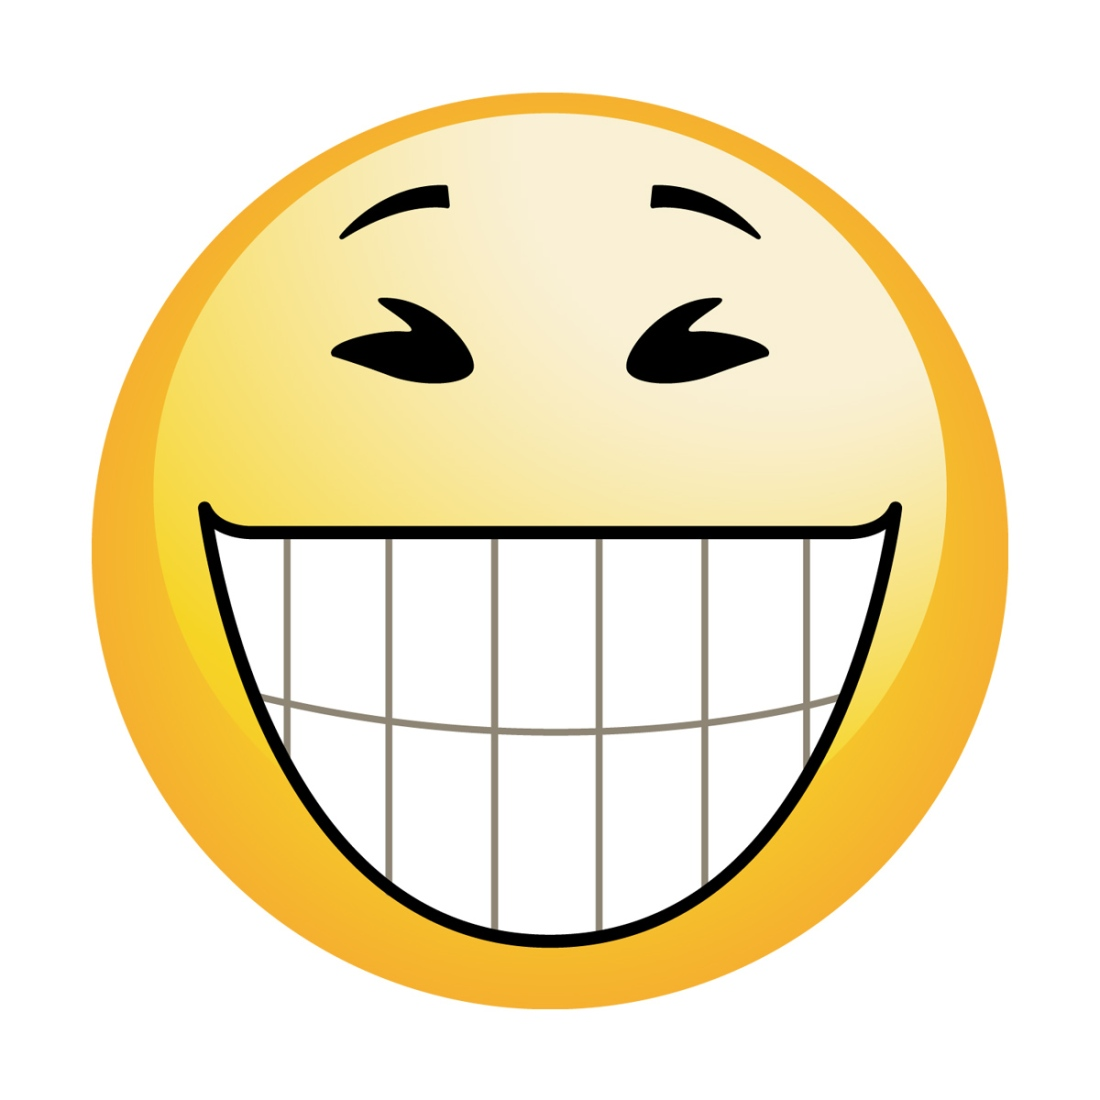 sticker-smiley-grand-sourire-ambiance-sticker-col-smile_bigSmile.jpg